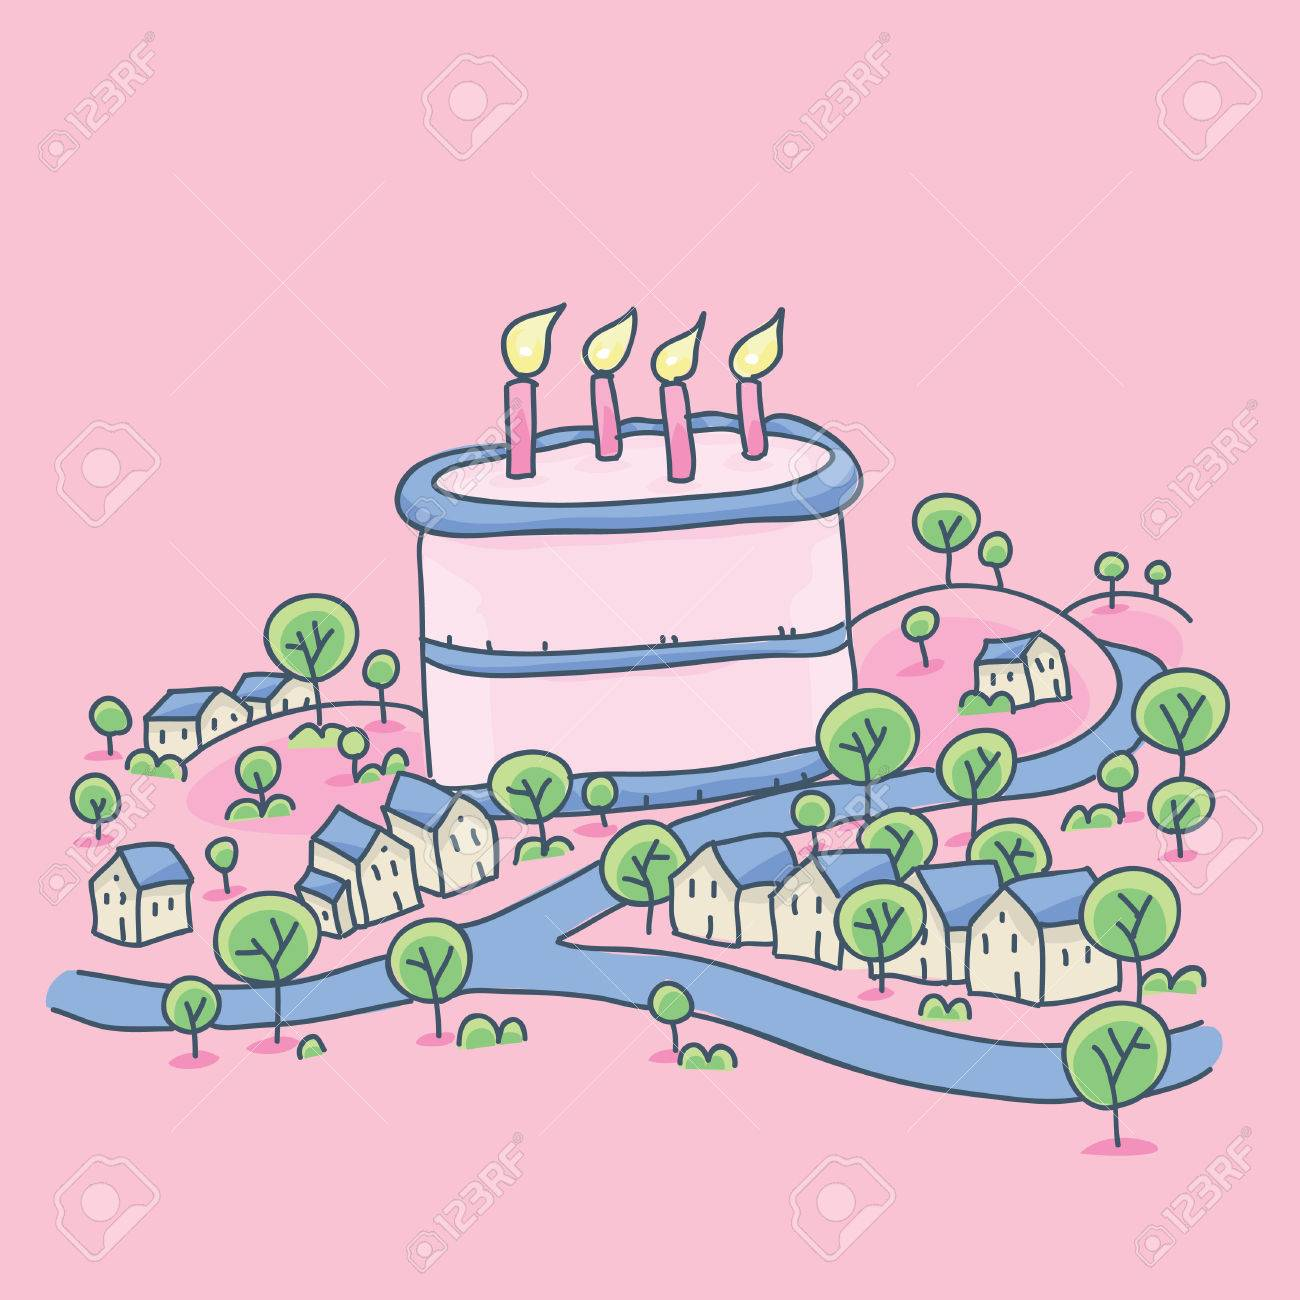 Awesome A Small Cartoon Town With A Giant Birthday Cake In The Middle Funny Birthday Cards Online Fluifree Goldxyz